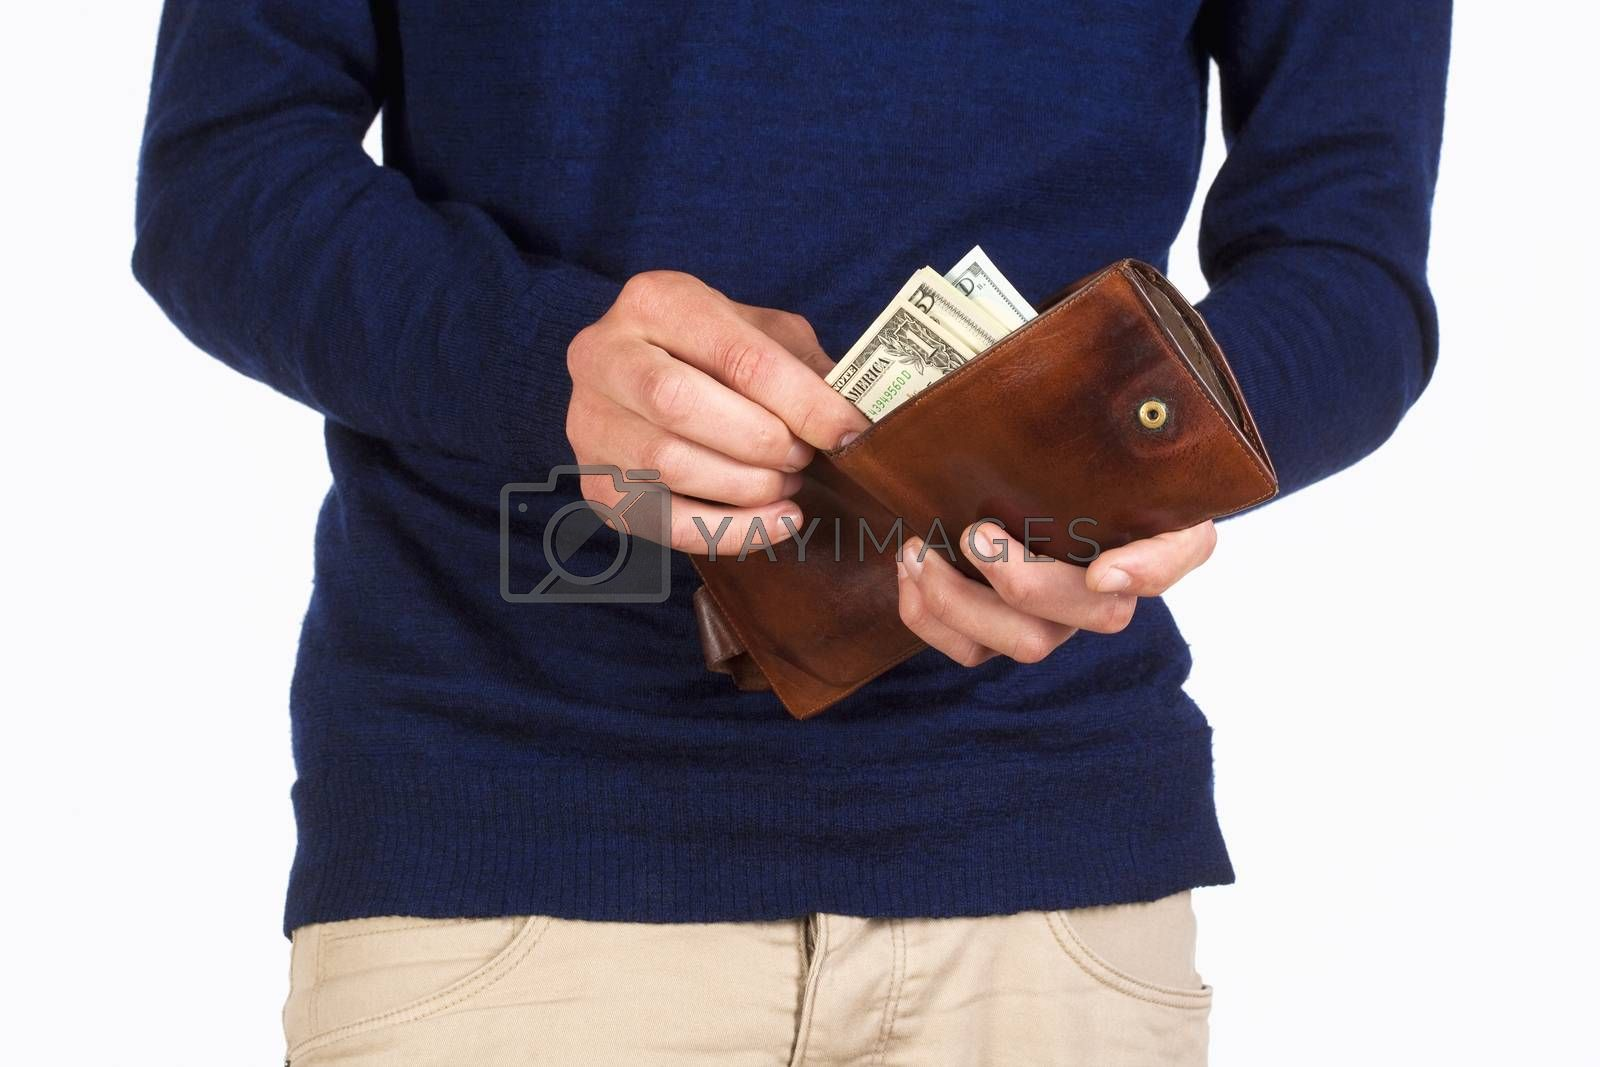 Royalty free image of Man Holding a Wallet and Counting Dollars by courtyardpix